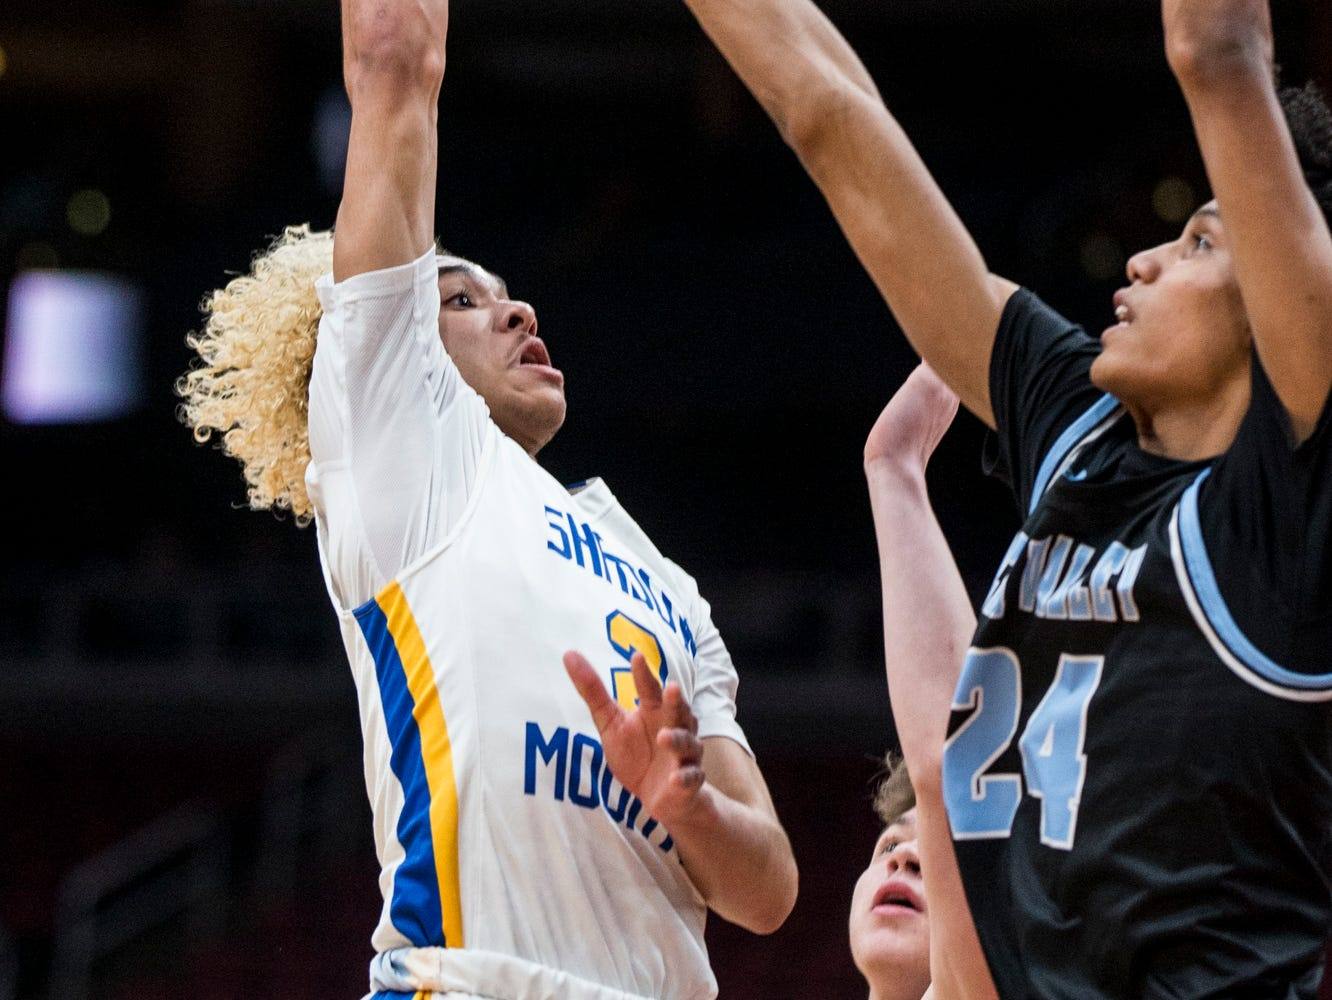 Shadow Mountain's Jaelen House attempts a shot against Deer Valley during the 4A boys basketball championship on Saturday, Feb. 23, 2019, at Gila River Arena in Glendale, Ariz.